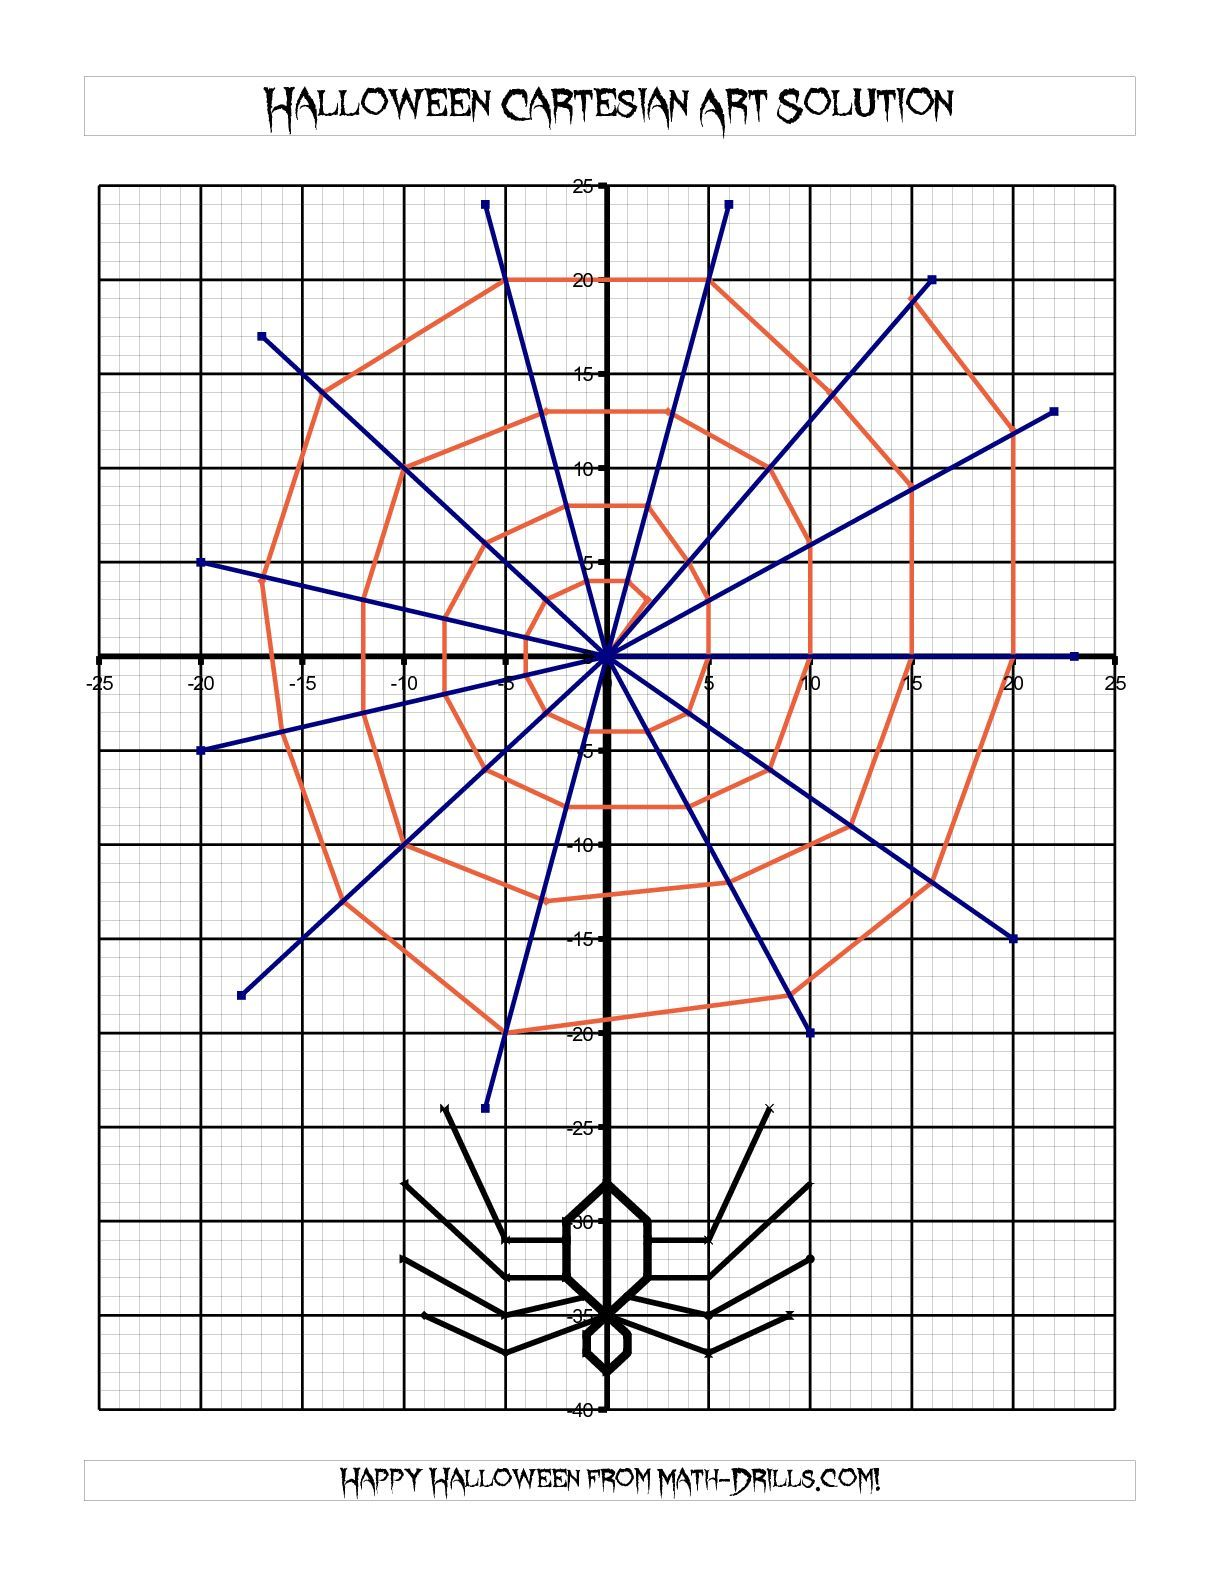 The Cartesian Art Halloween Spider Math Worksheet From The